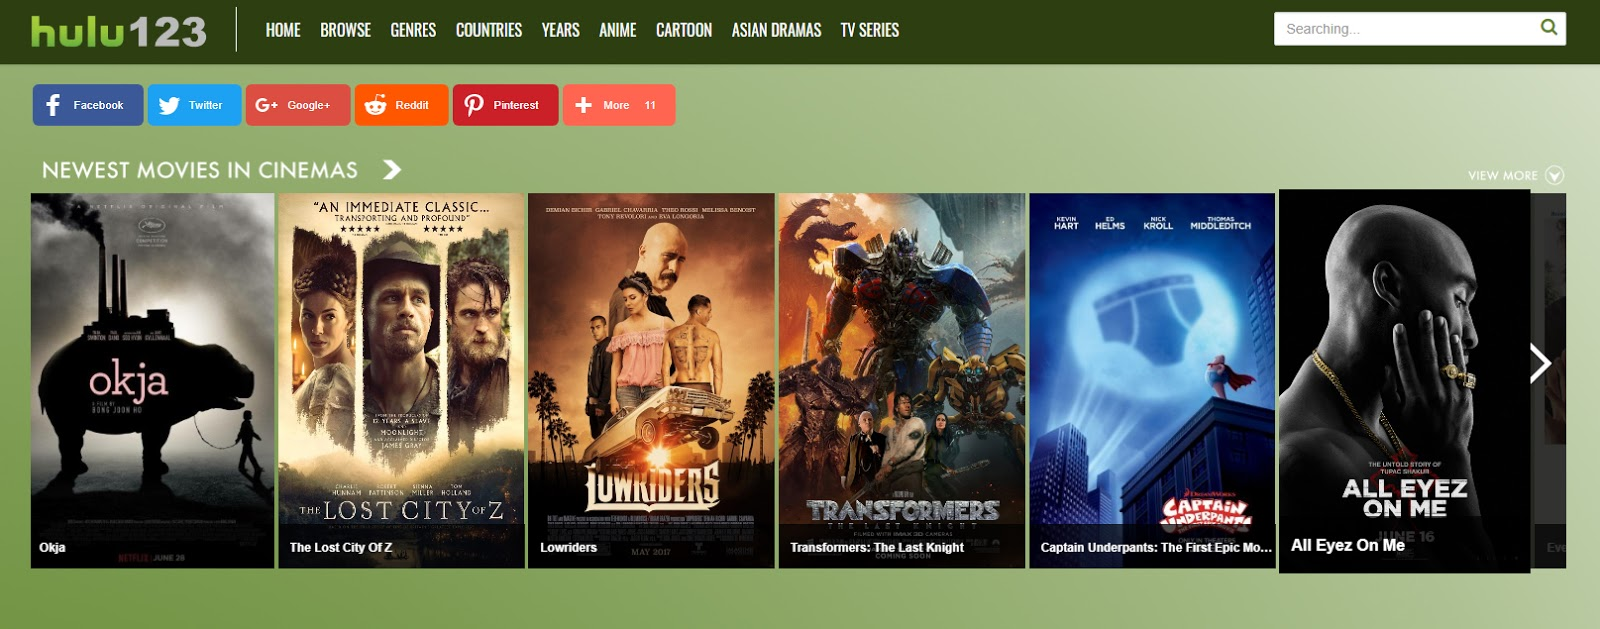 6 EXCELLENT WEBSITES WATCH FREE MOVIES ONLINE: 6 BEST ...